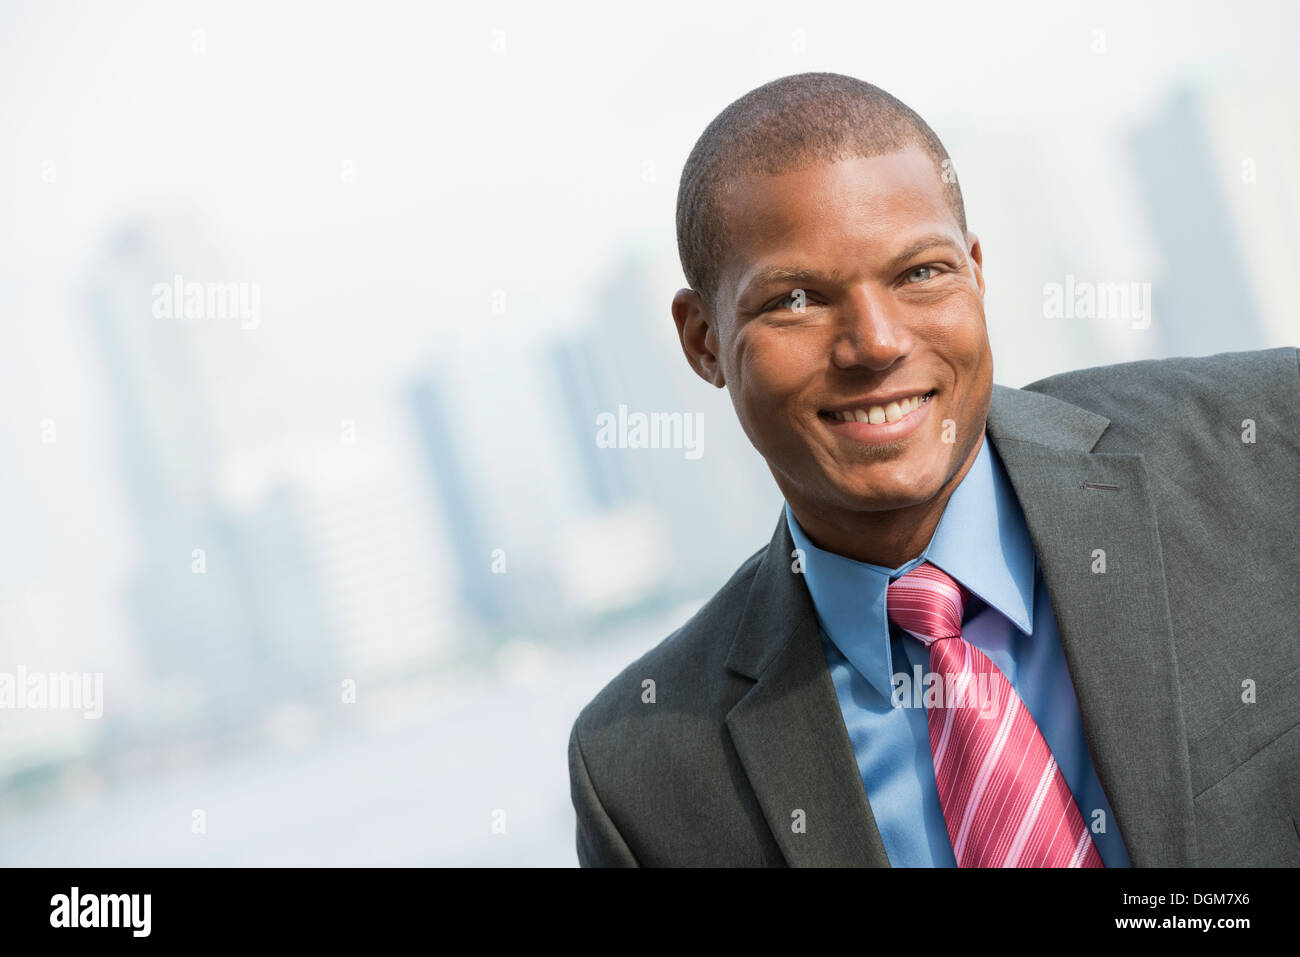 A young man in a business suit with a blue shirt and red tie. On a city street. Smiling at the camera. - Stock Image